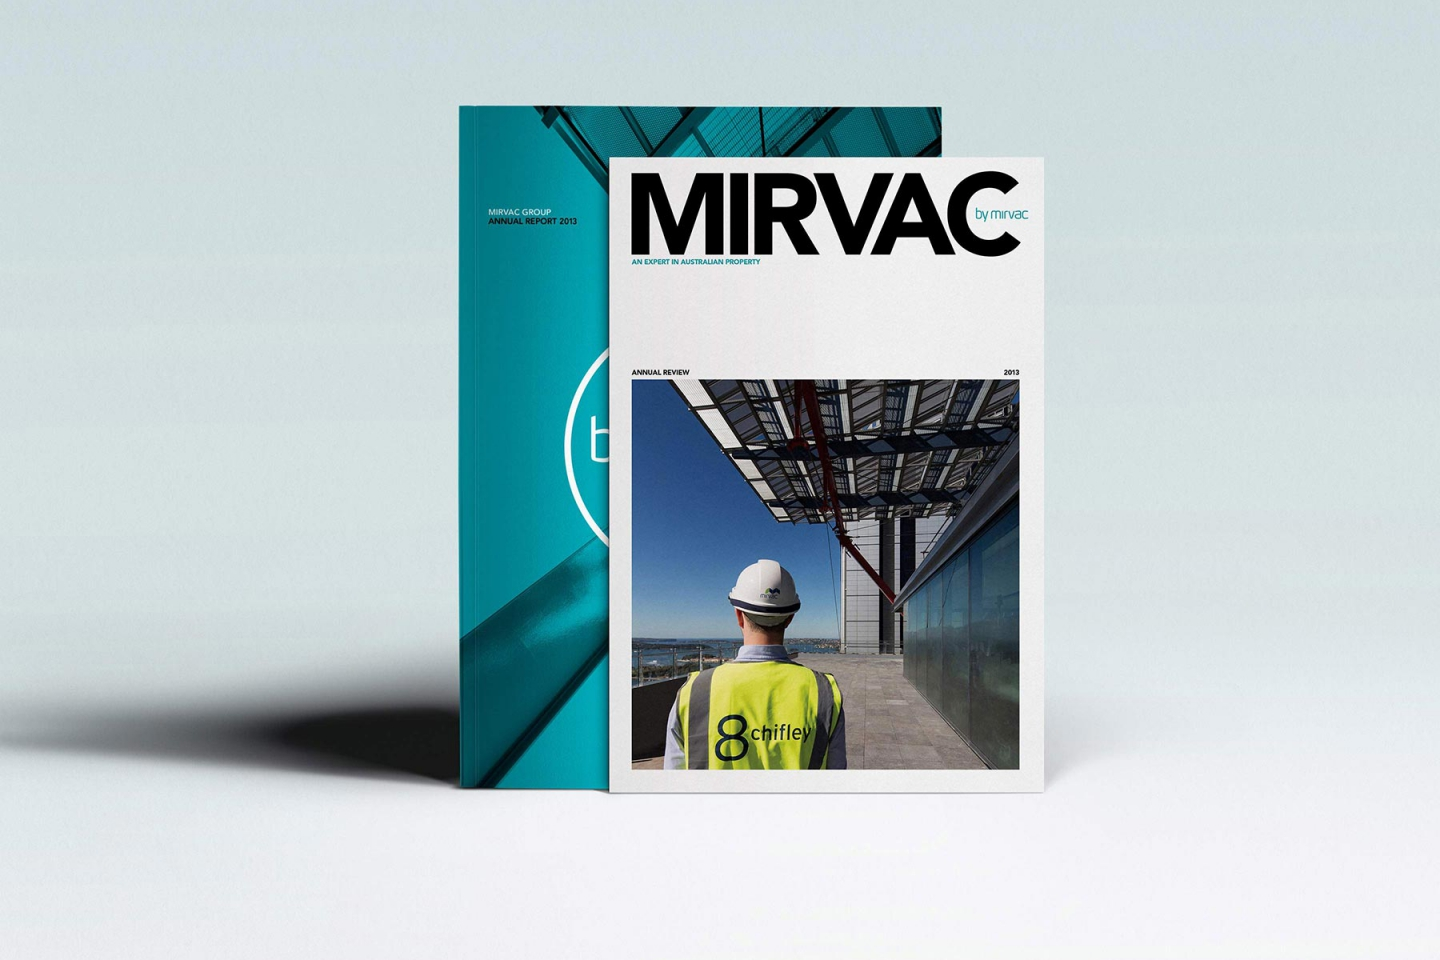 Mirvac: Annual Report + Review 2013